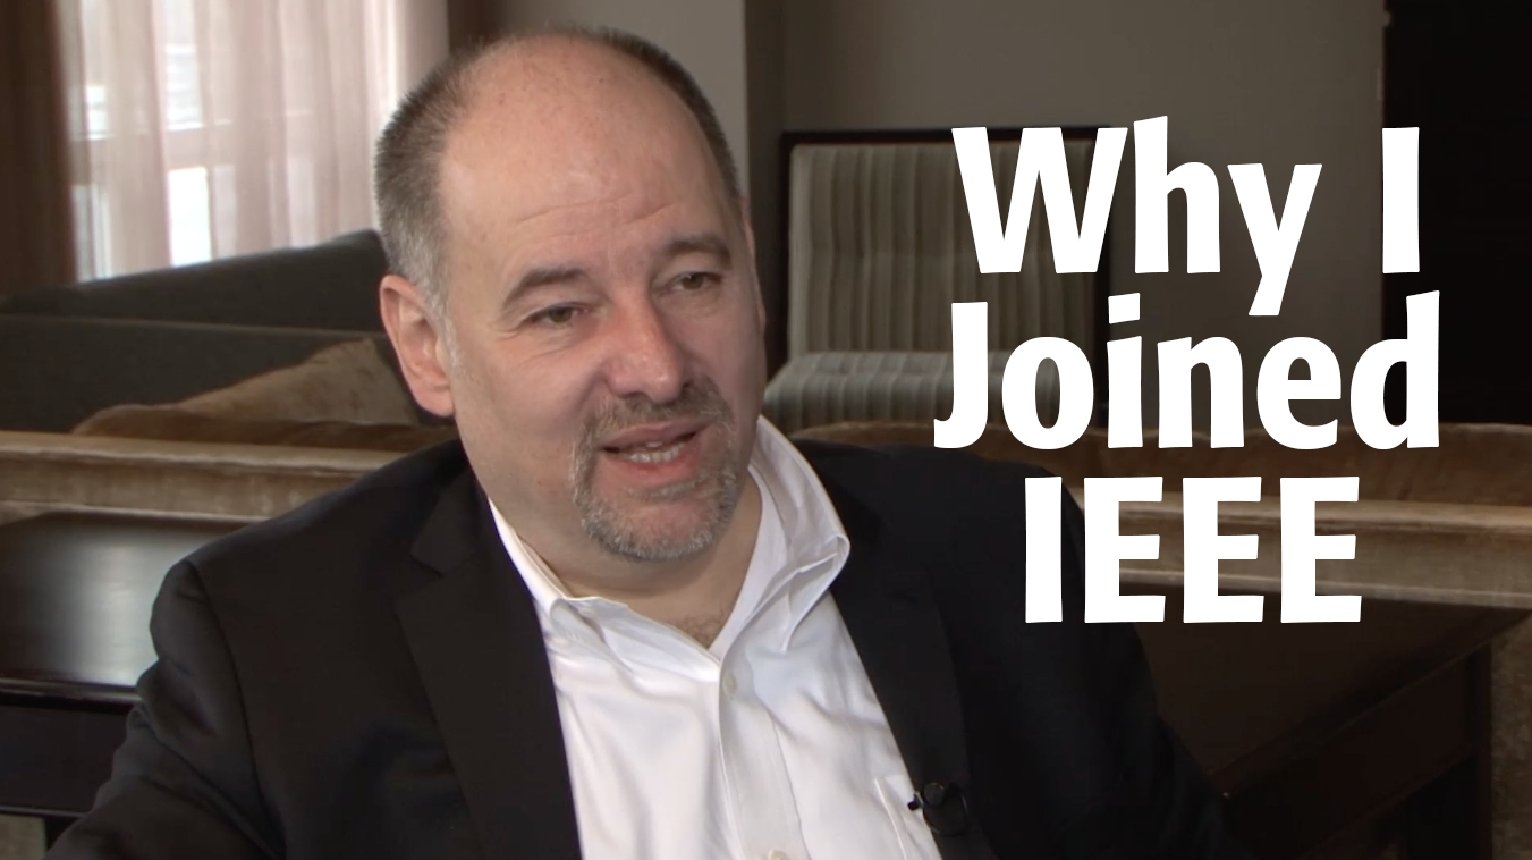 Industry Connections: Oleg Logvinov - Why I Joined